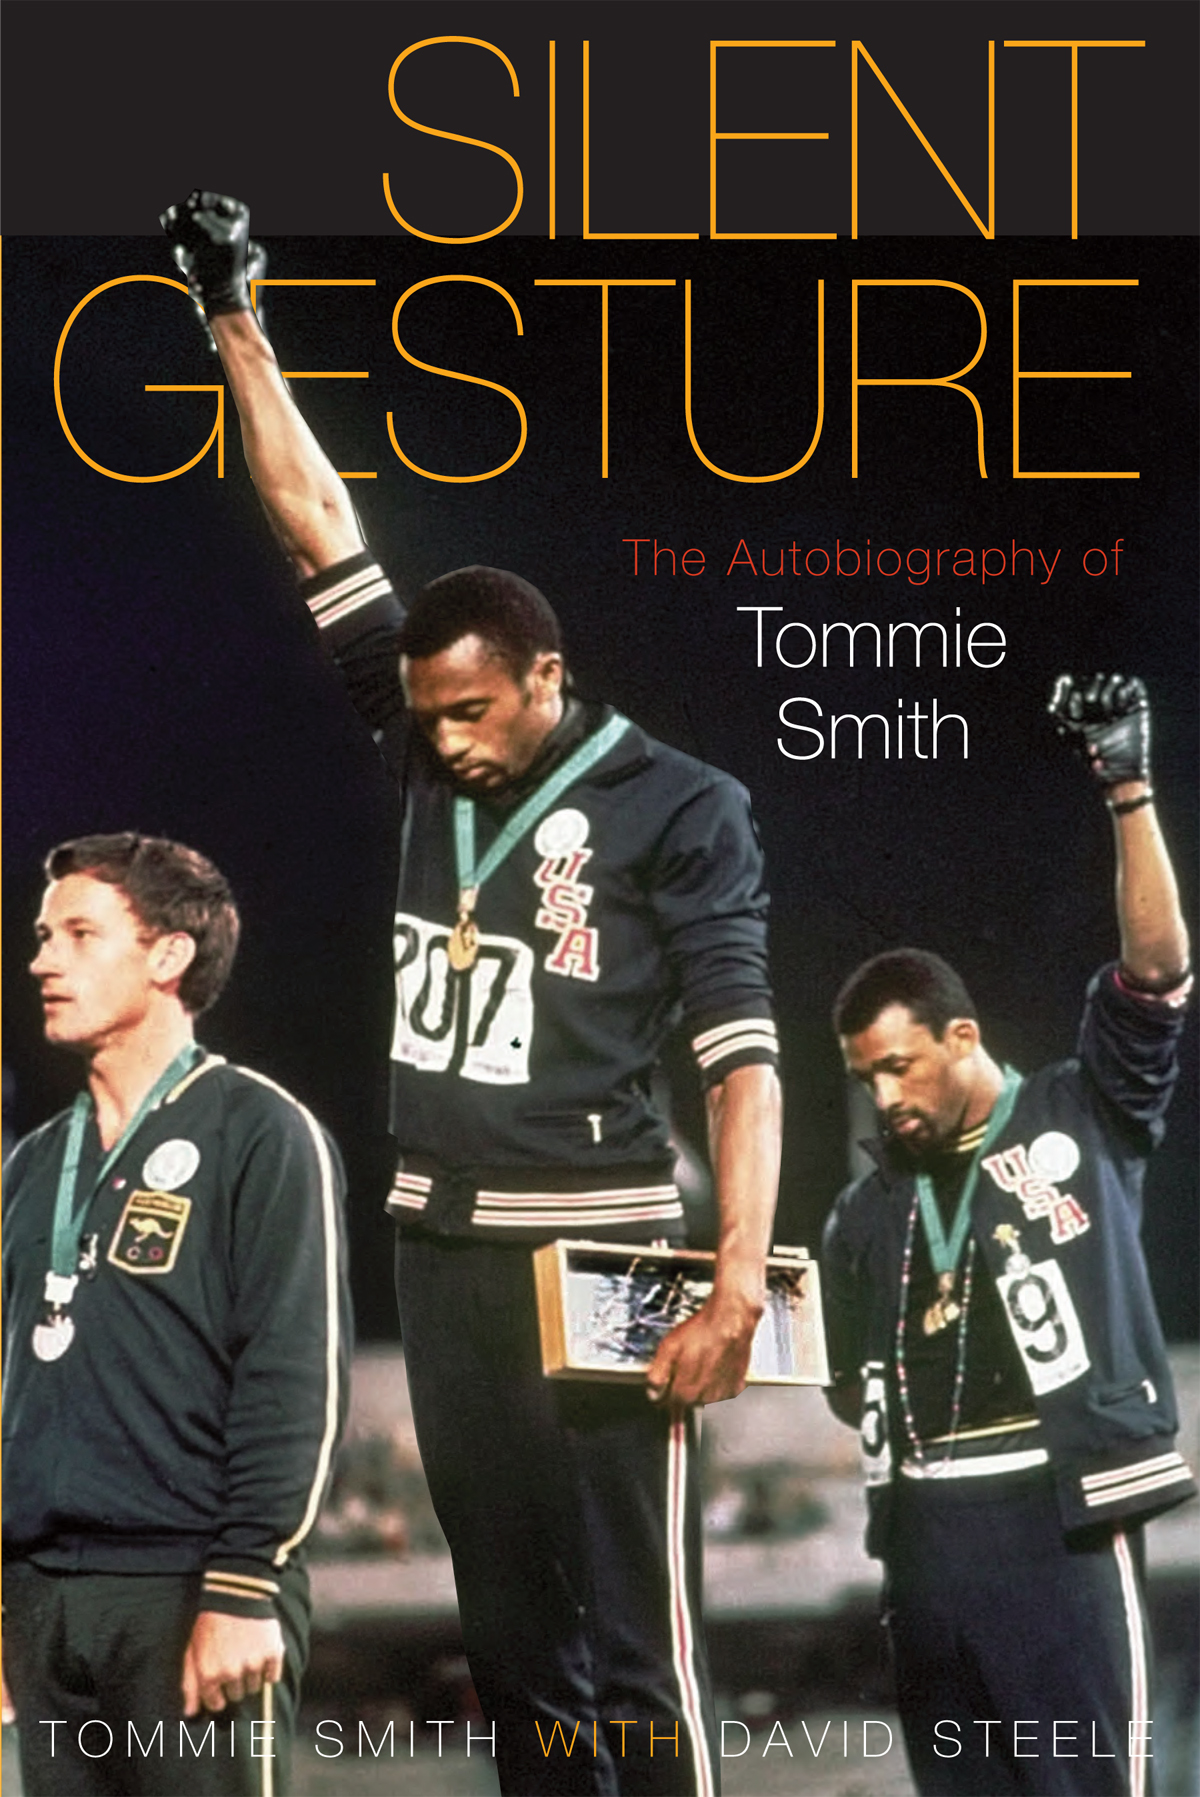 By Dennis J. Freeman Tommie Smith has given up his gold medal and track cleats to the highest bidder. Perhaps...